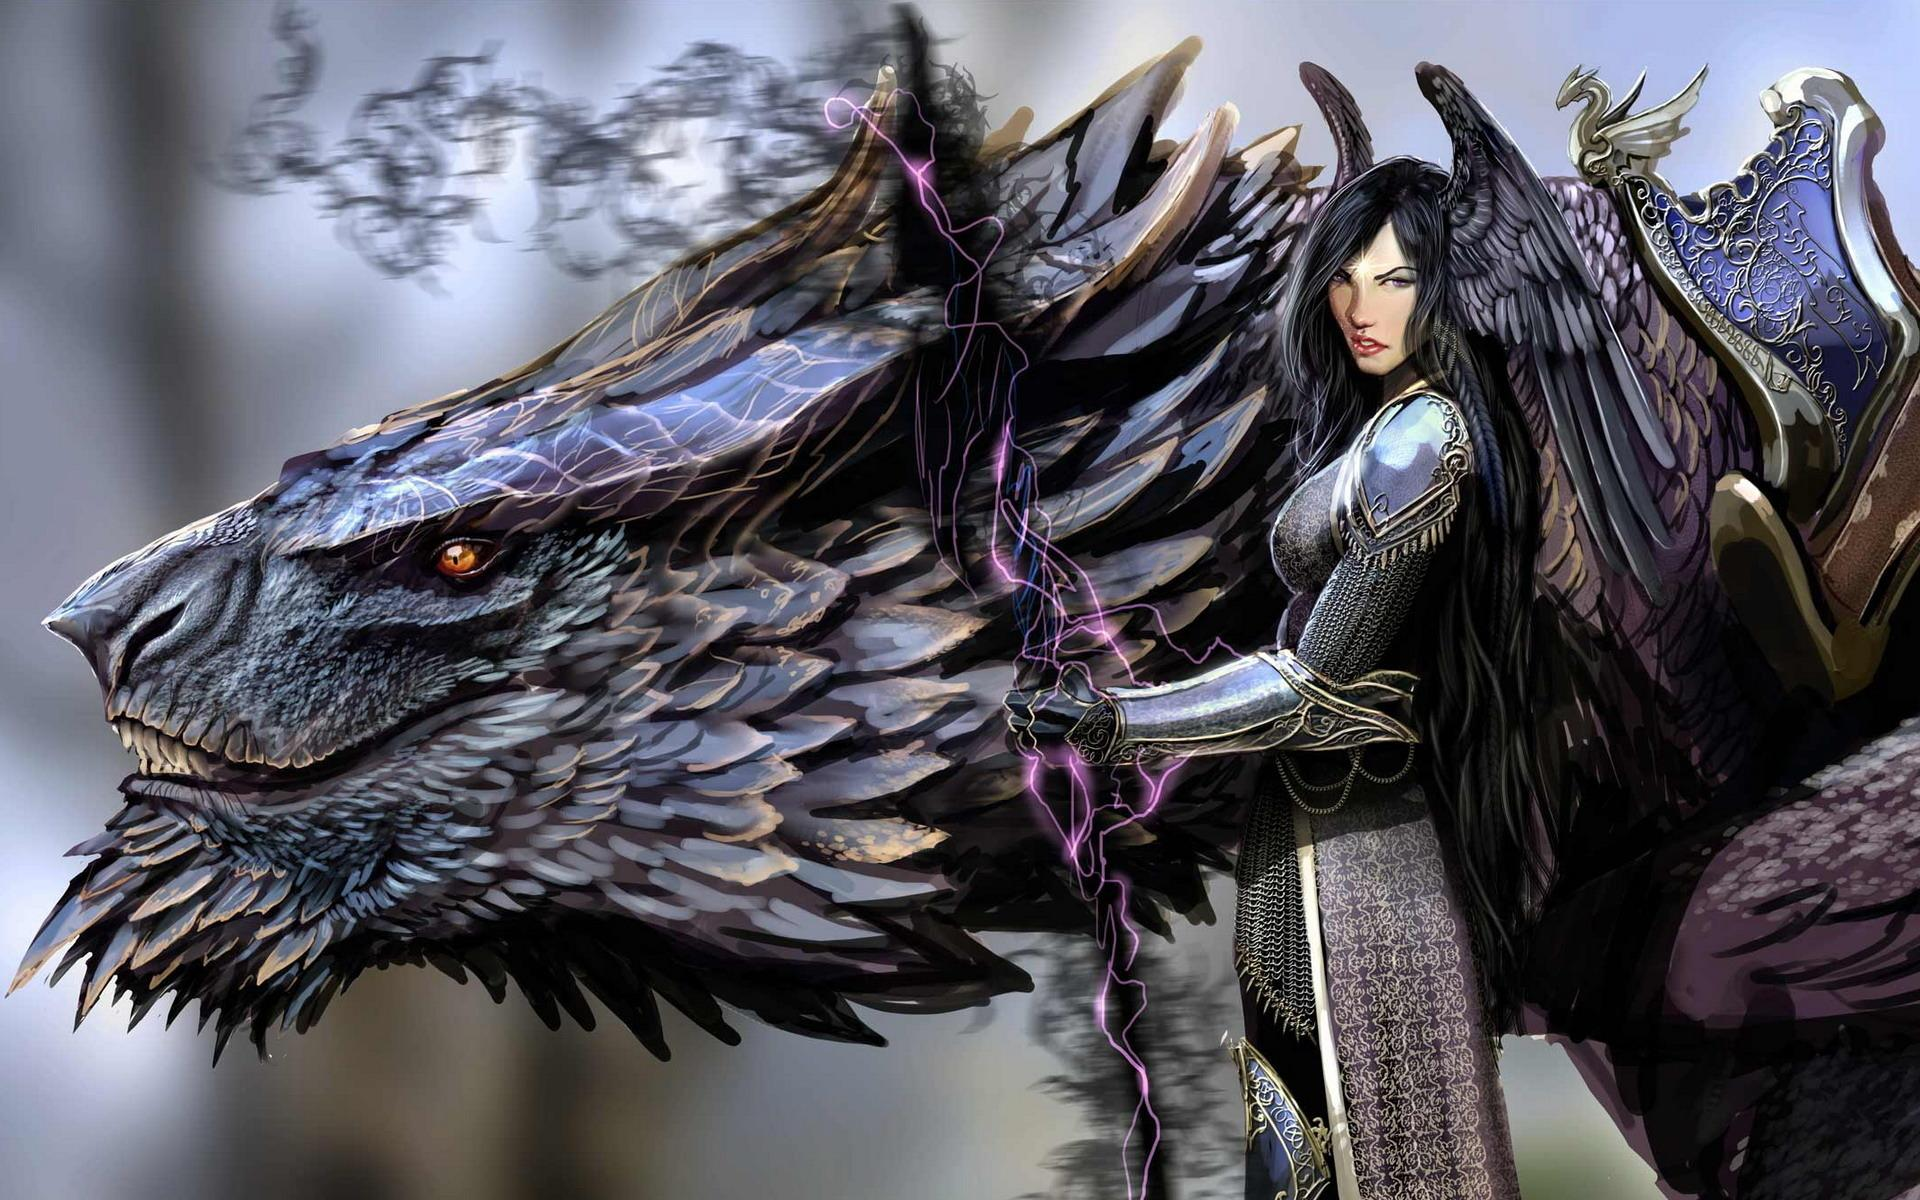 Fantasy Dragon Woman Warrior Wallpaper #49800 - Resolution 1920x1200 px